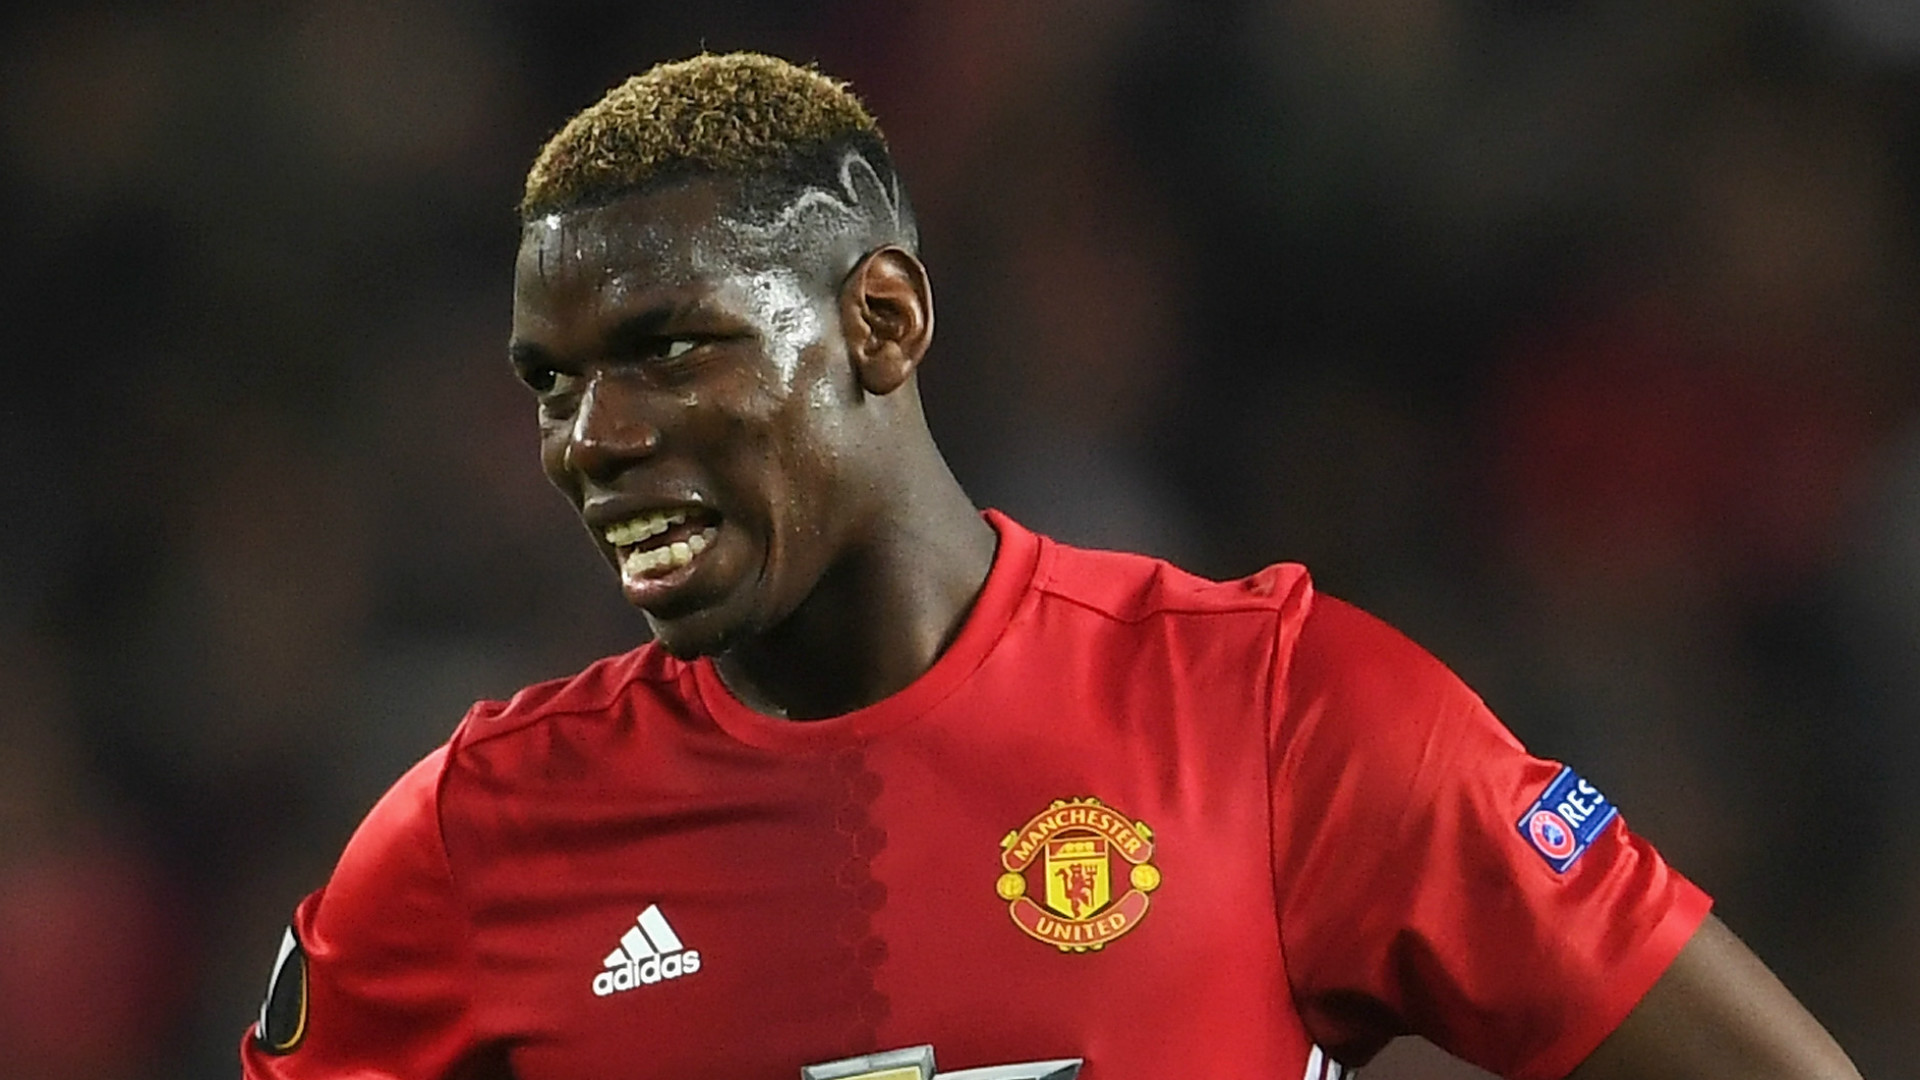 Paul-pogba-manchester-united_1t83ehibry5r21gdboelc70d2f